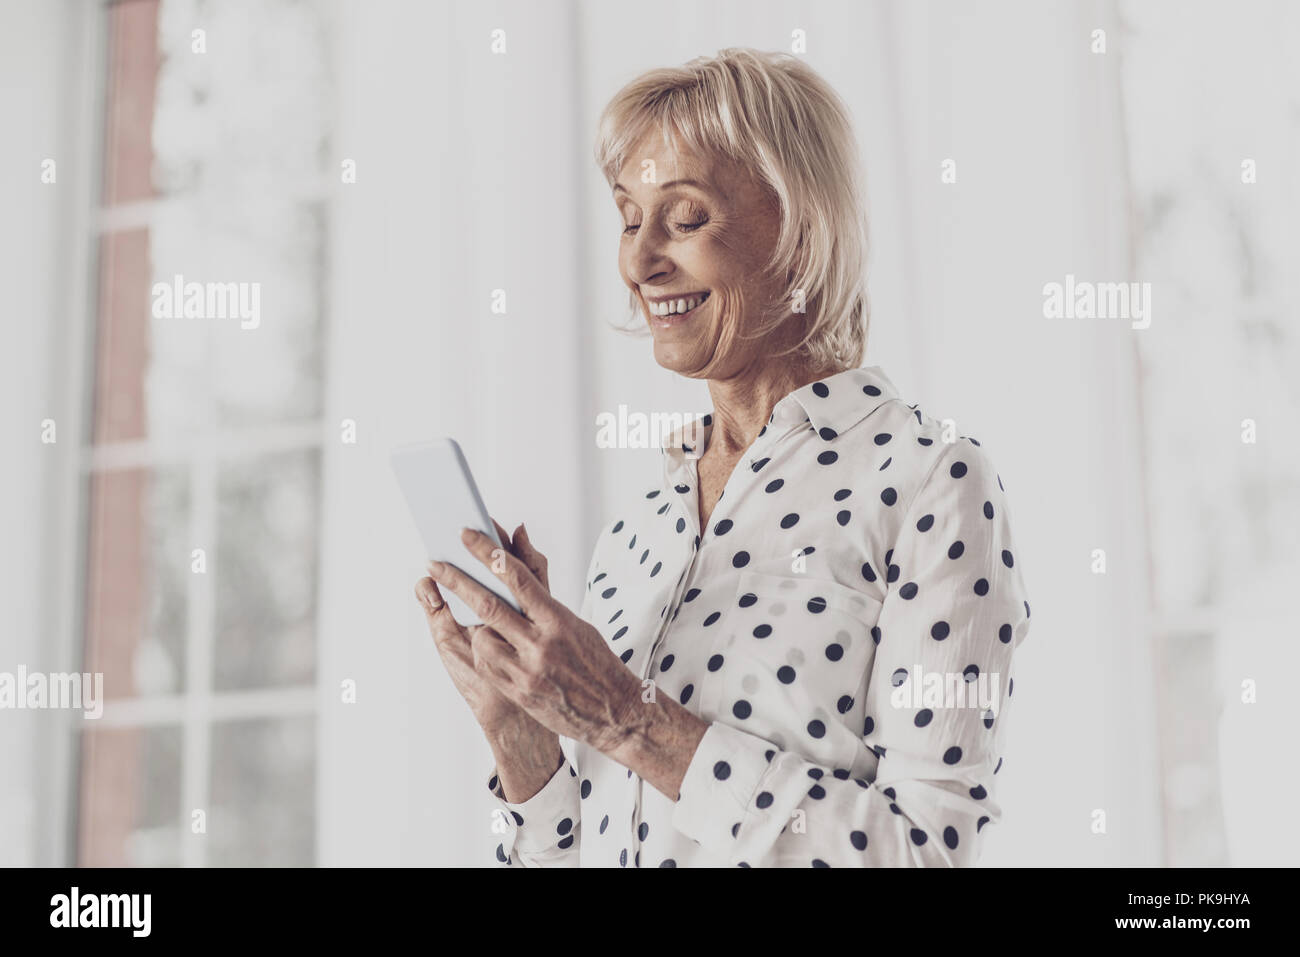 Elderly lady with facial wrinkles feeling wonderful - Stock Image